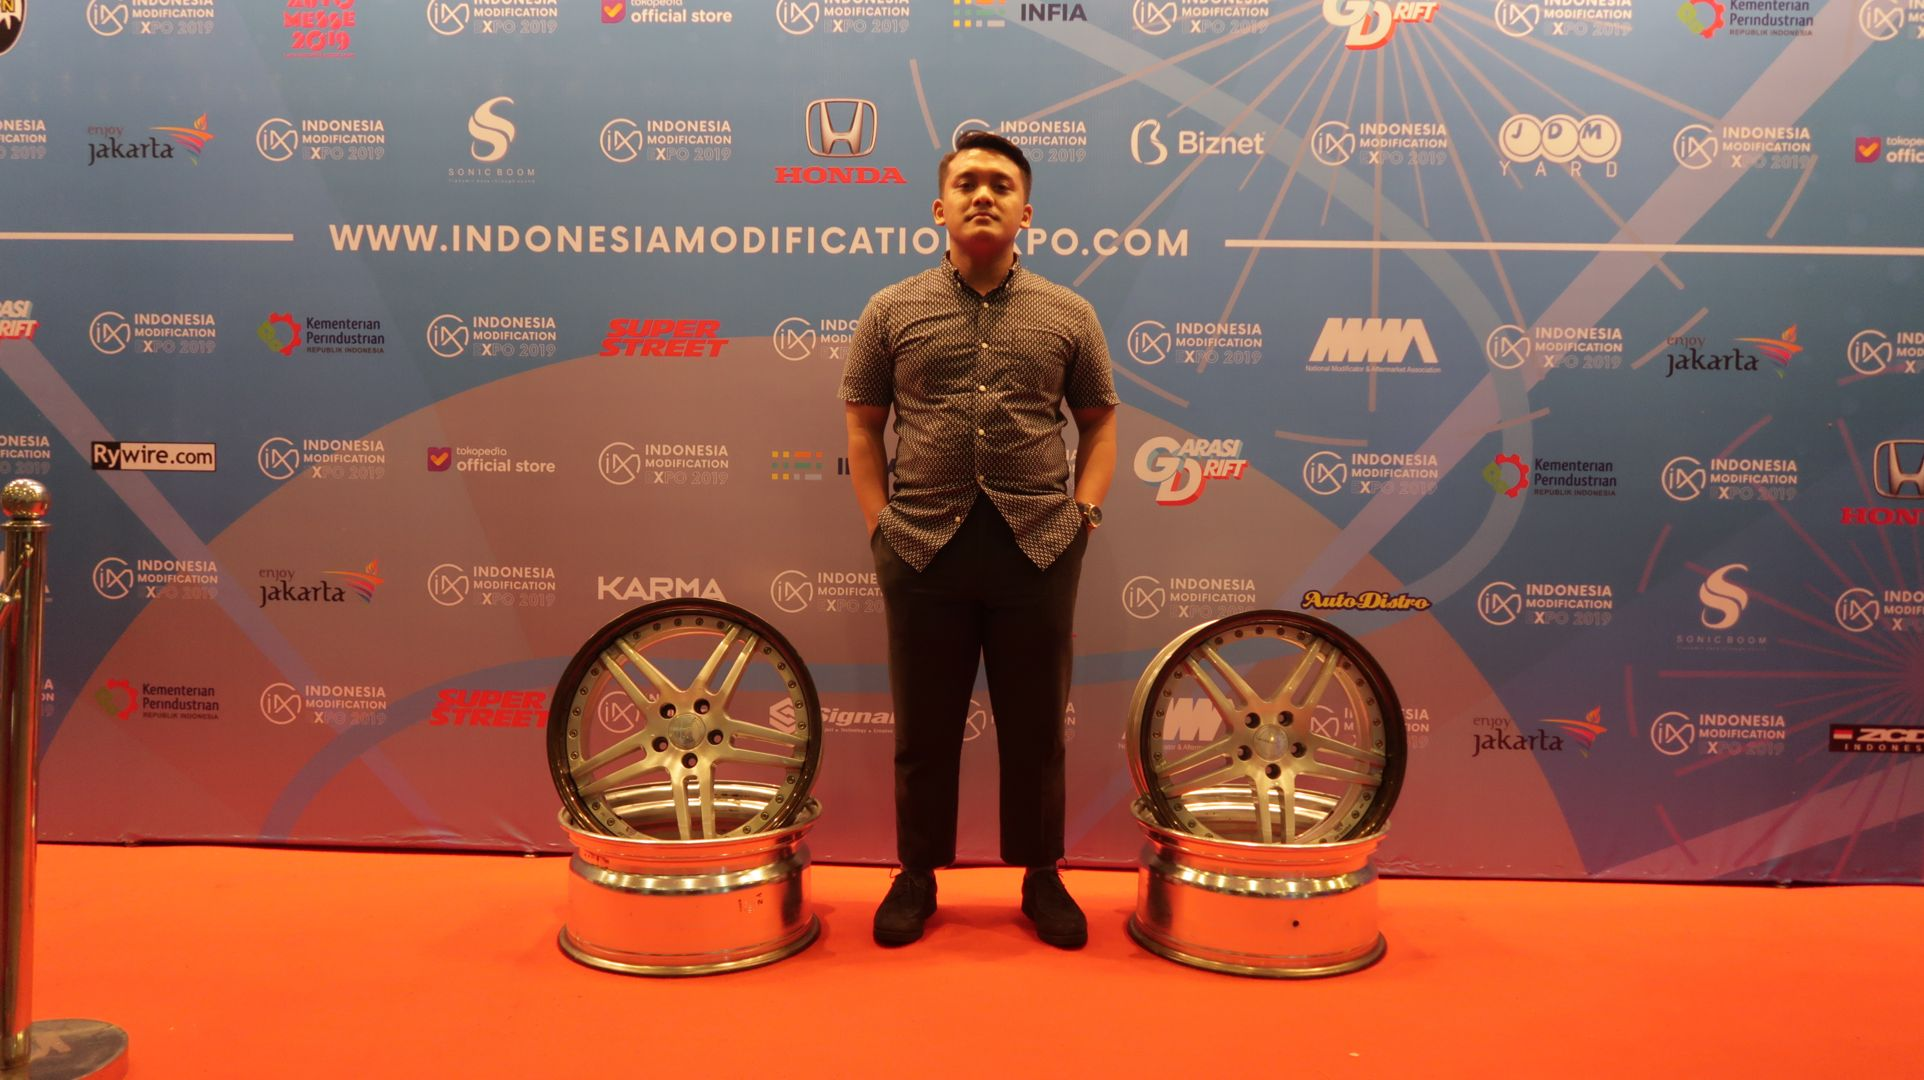 Imx - Indonesia modification expo giveaway 2019 (22)